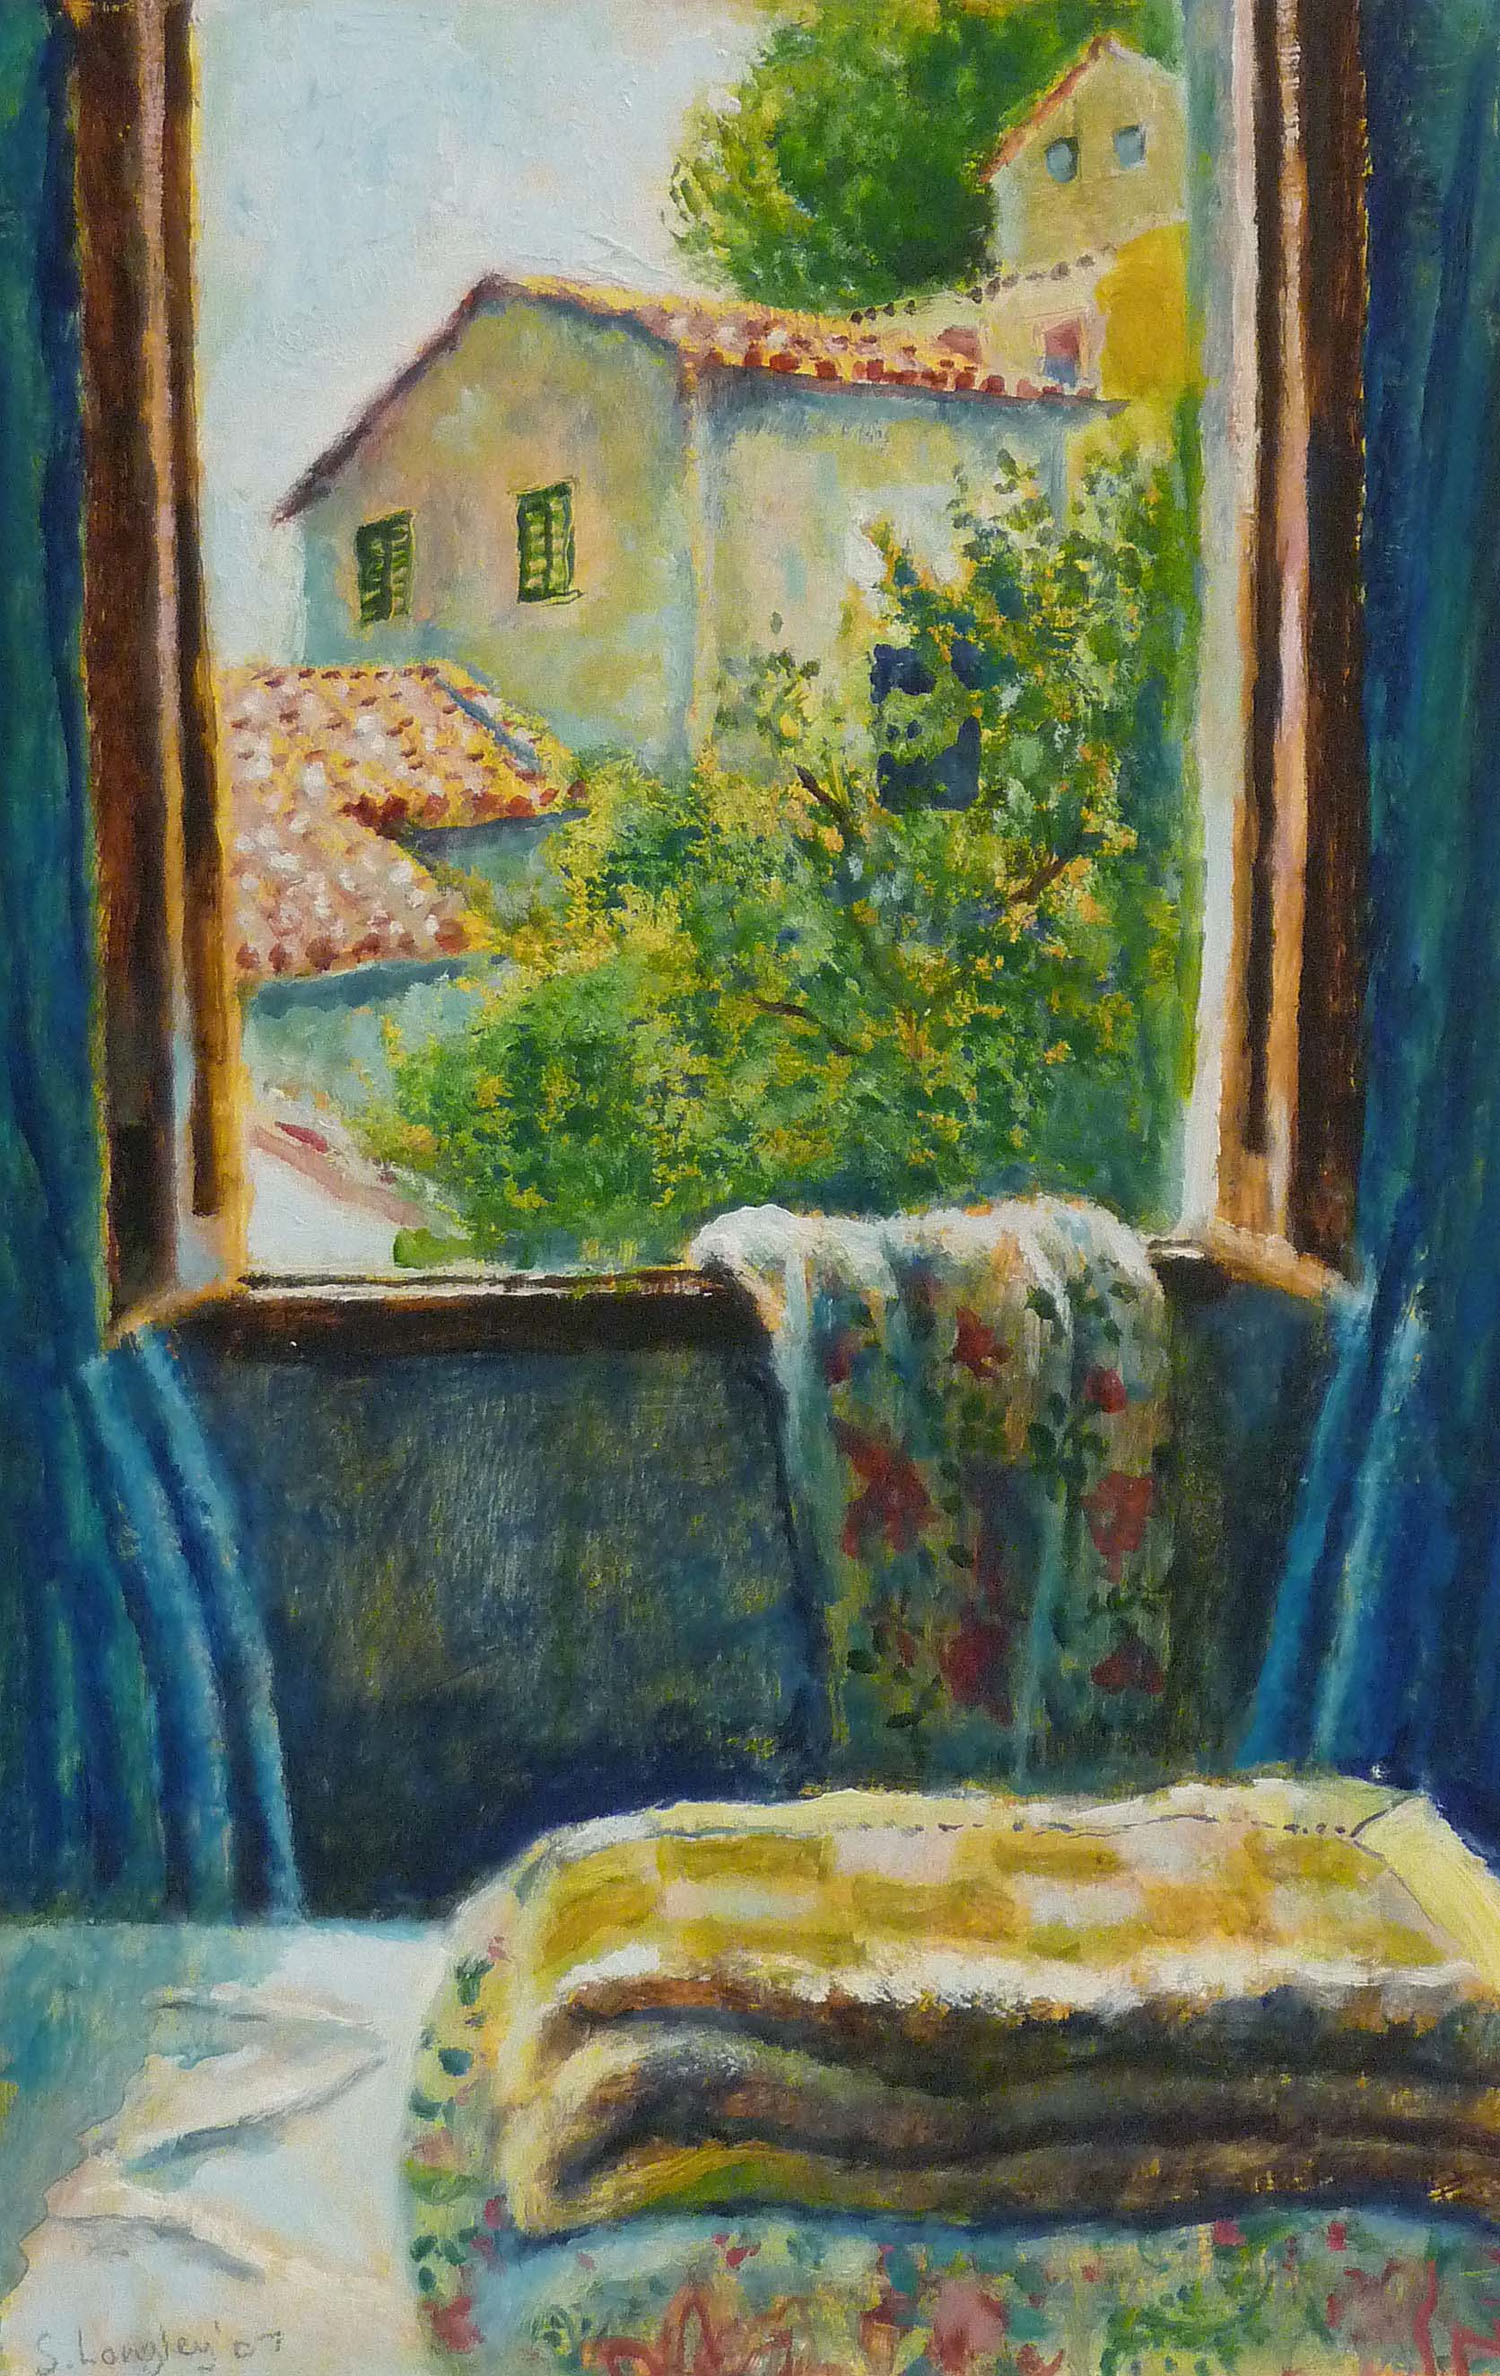 Sarah Longley_-_Cardoso Window_oil on board_45 x 31cm.jpg